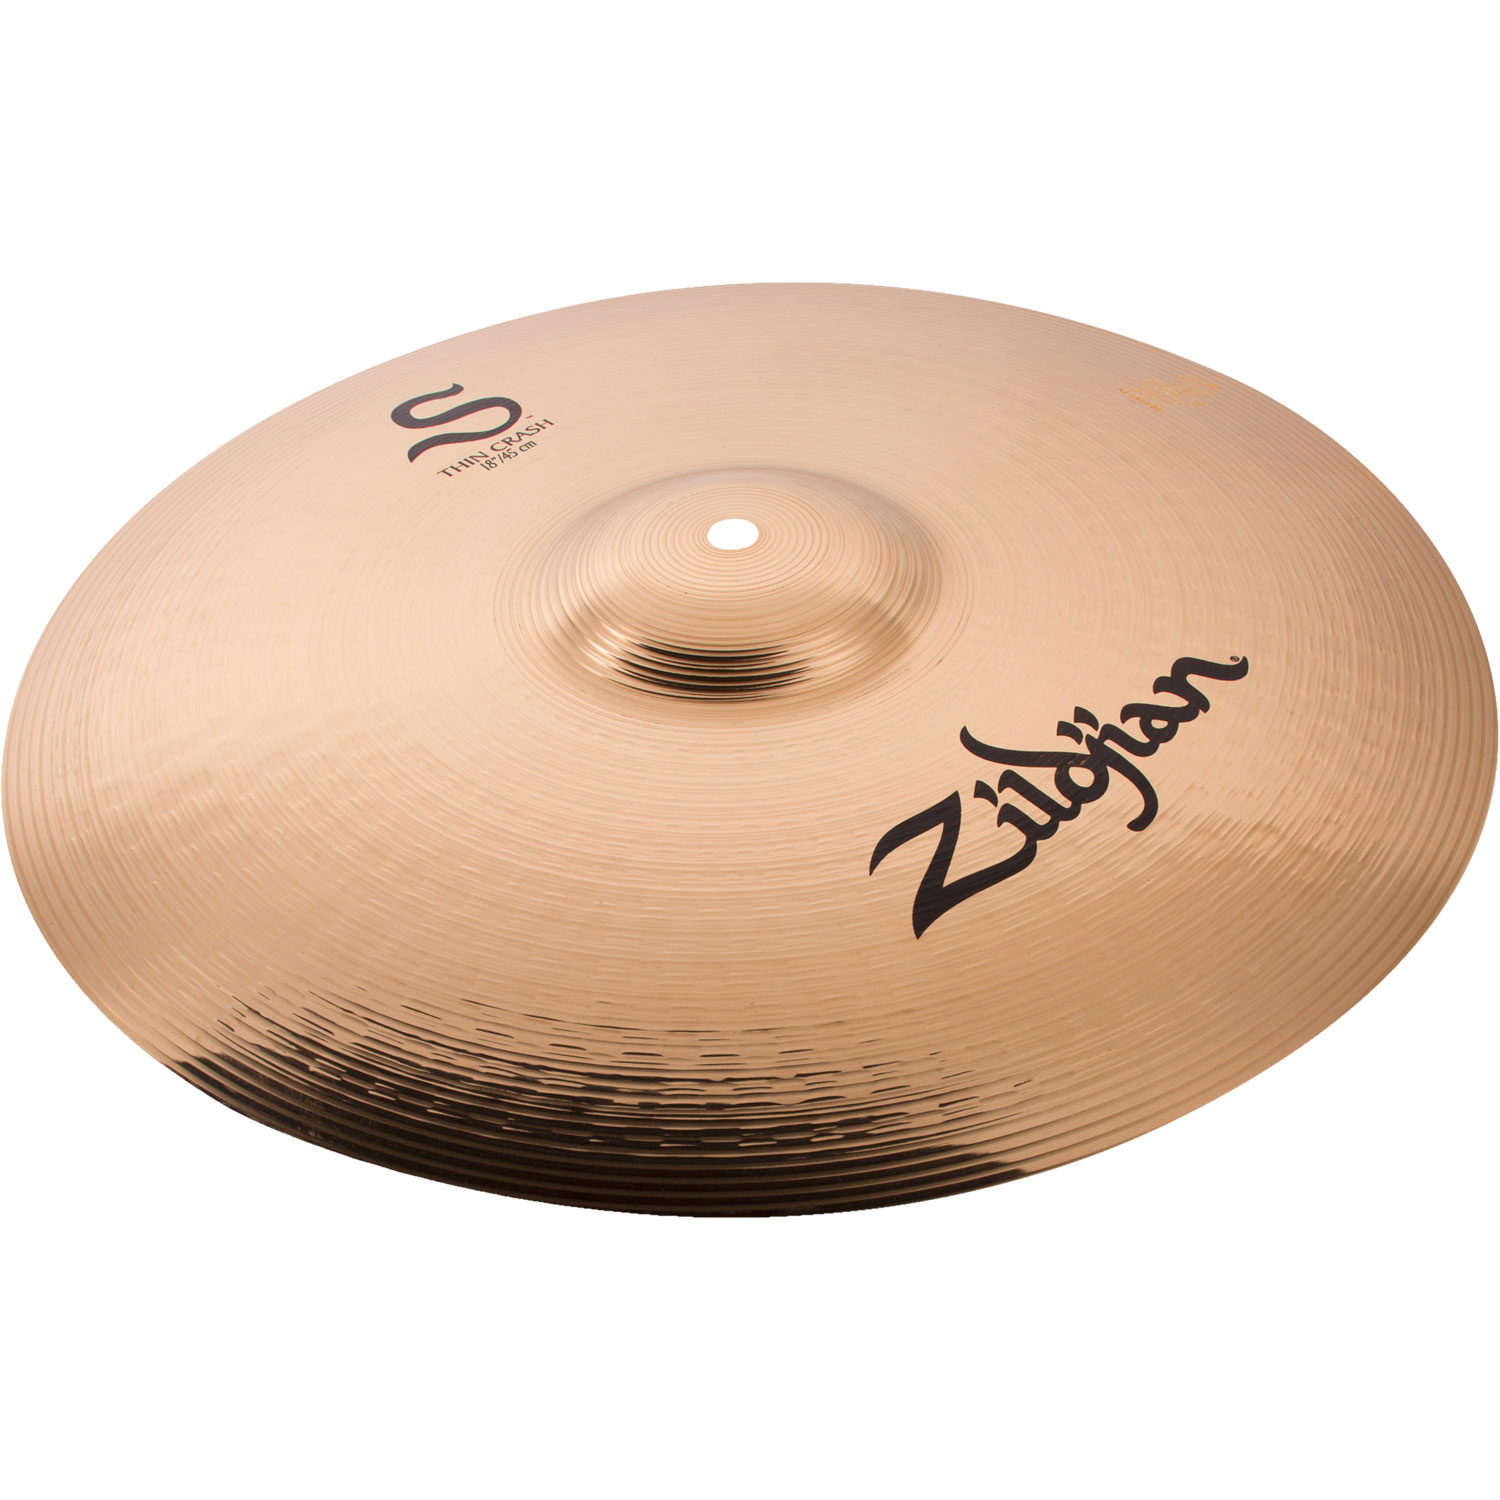 "Zildjian 18"" S Family Thin Crash Cymbal"